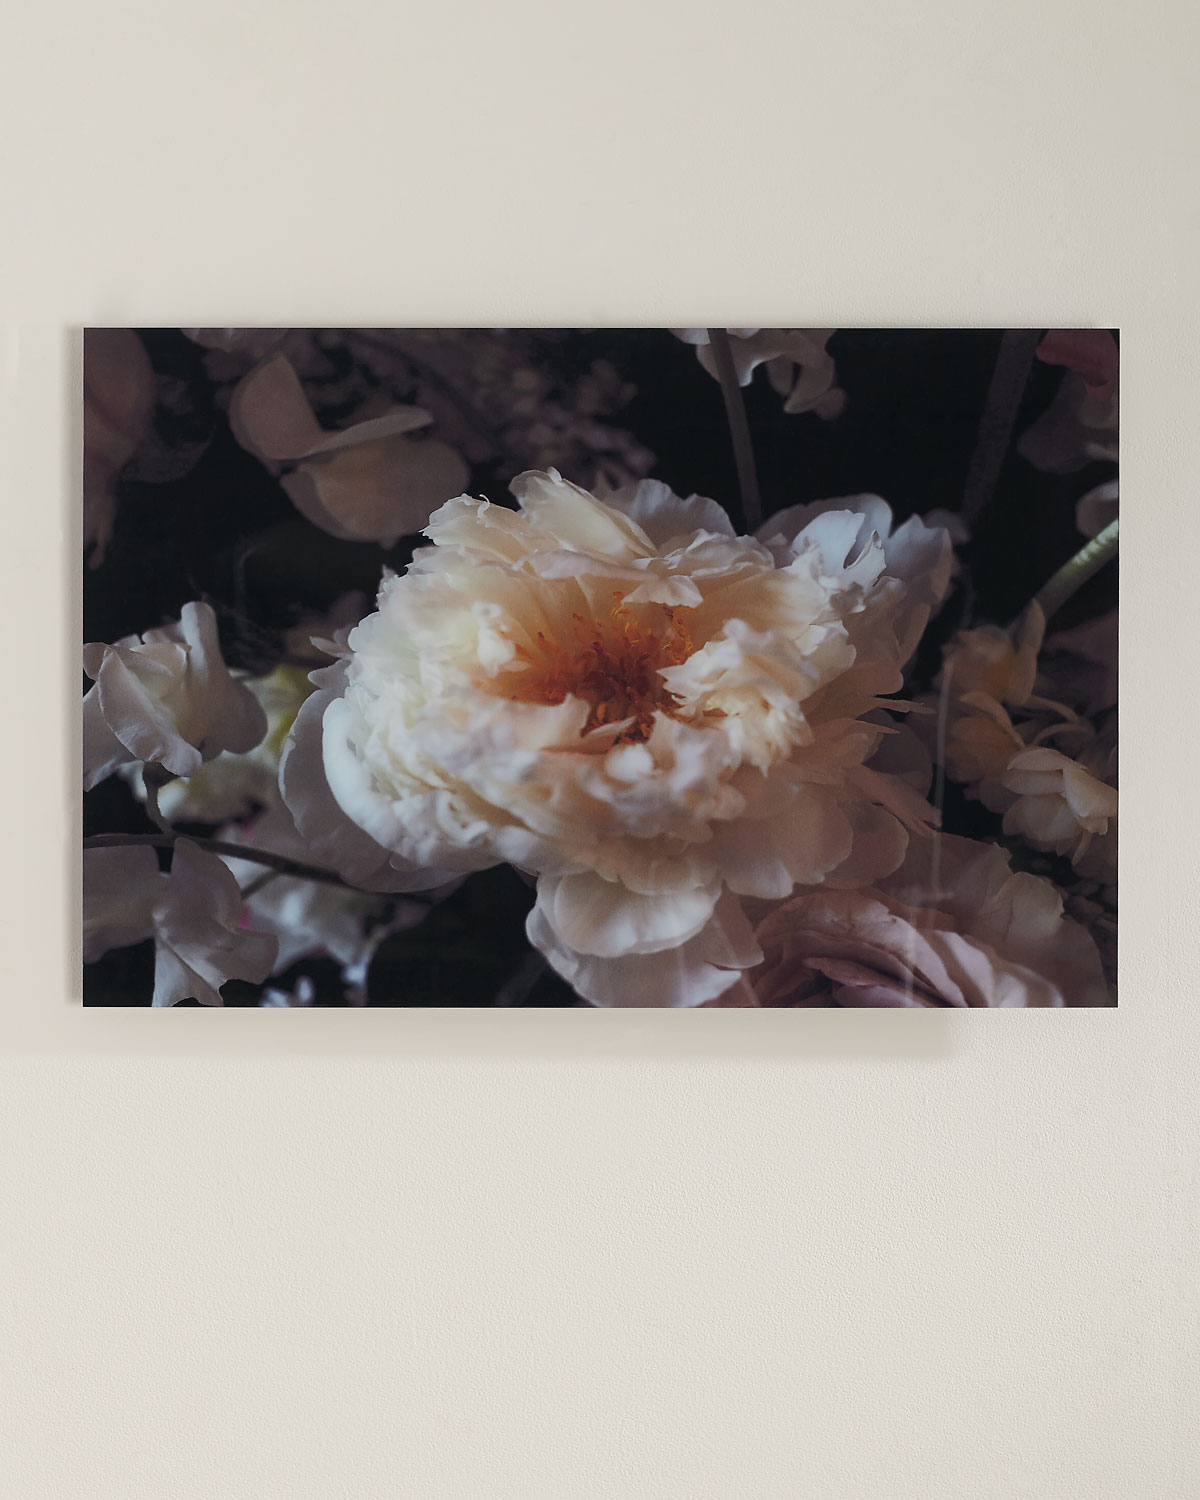 """Handcrafted soft focus digital photography print on Plexiglass and wood. 3-point security hardware included. 32""""W x 1.5""""D x 21""""T. Made in the USA. Boxed weight, approximately 26 lbs."""